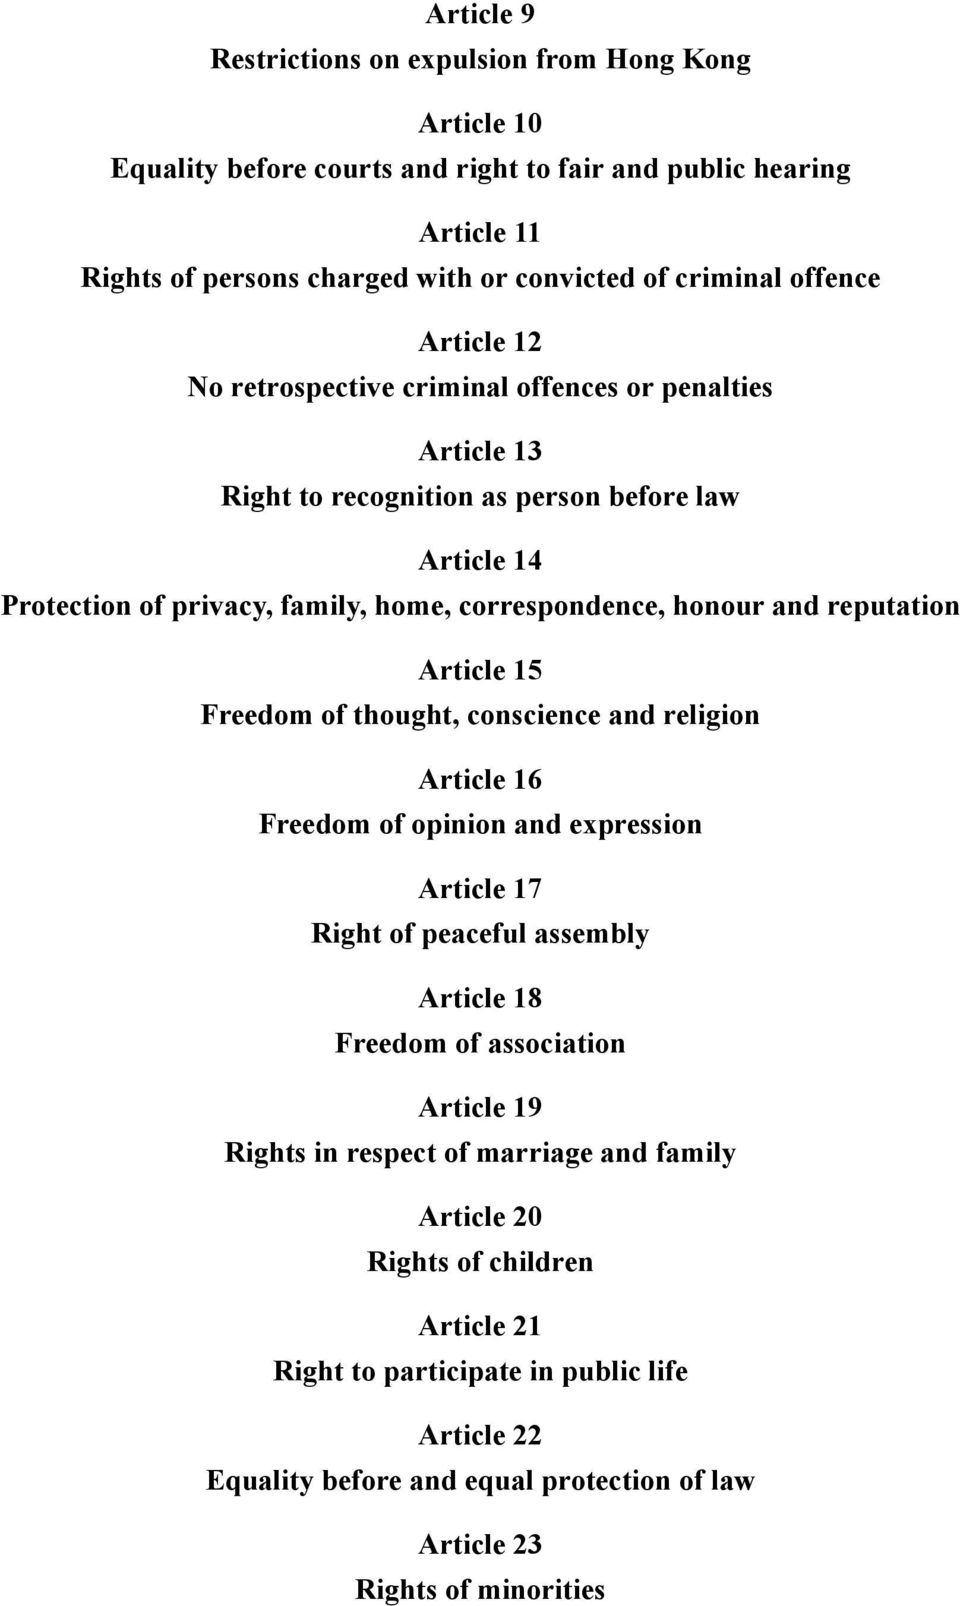 reputation Article 15 Freedom of thought, conscience and religion Article 16 Freedom of opinion and expression Article 17 Right of peaceful assembly Article 18 Freedom of association Article 19